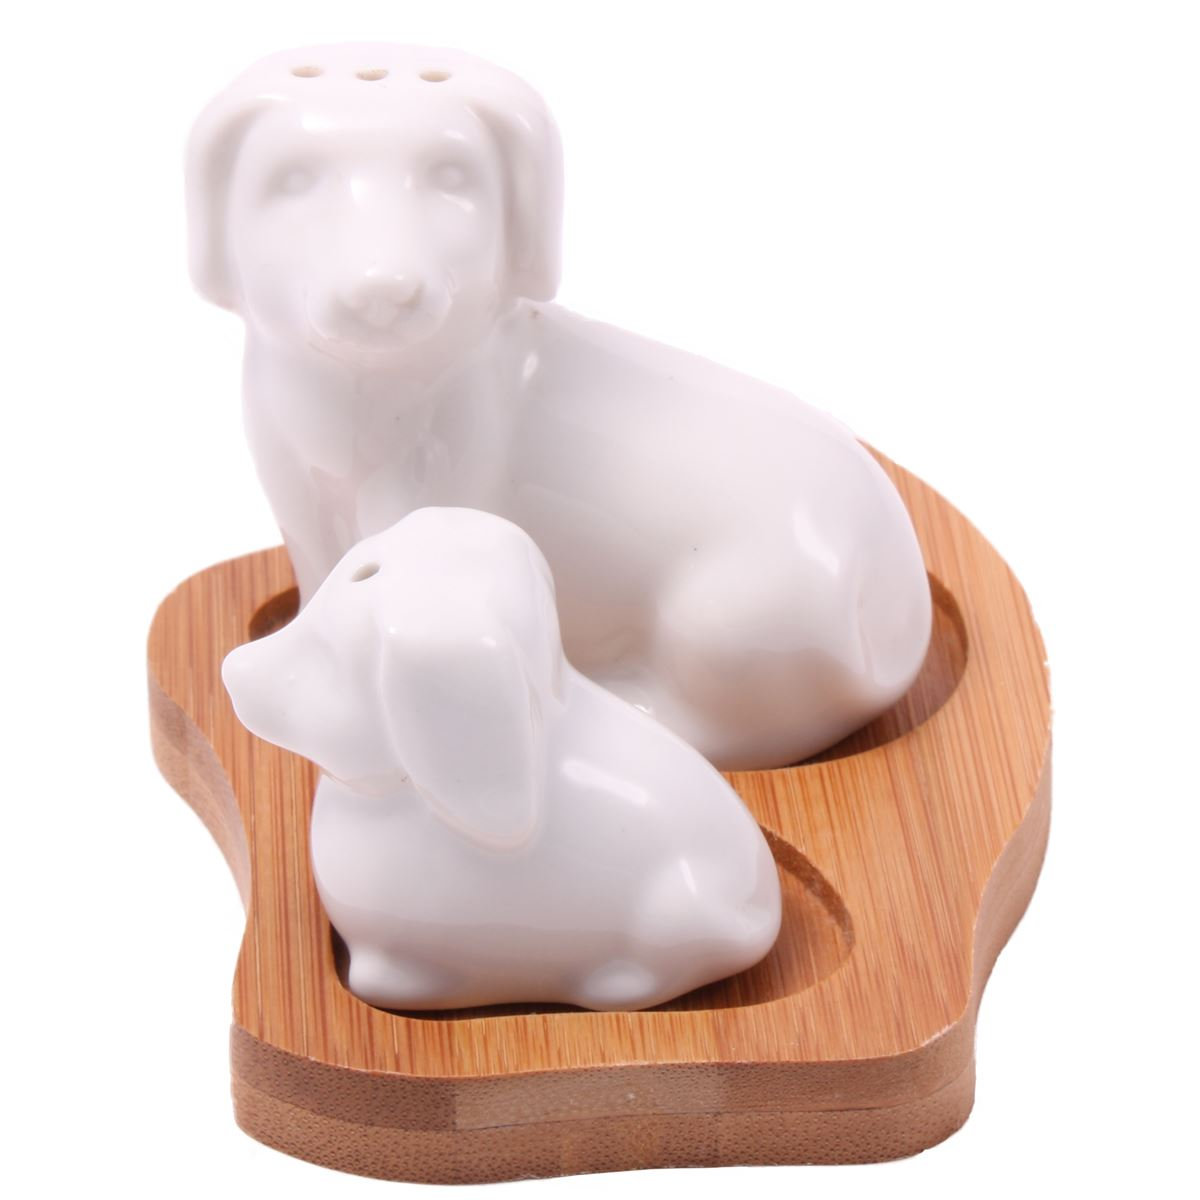 Details about Dog & Puppy Cruet Set - Porcelain Shakers on Bamboo Base